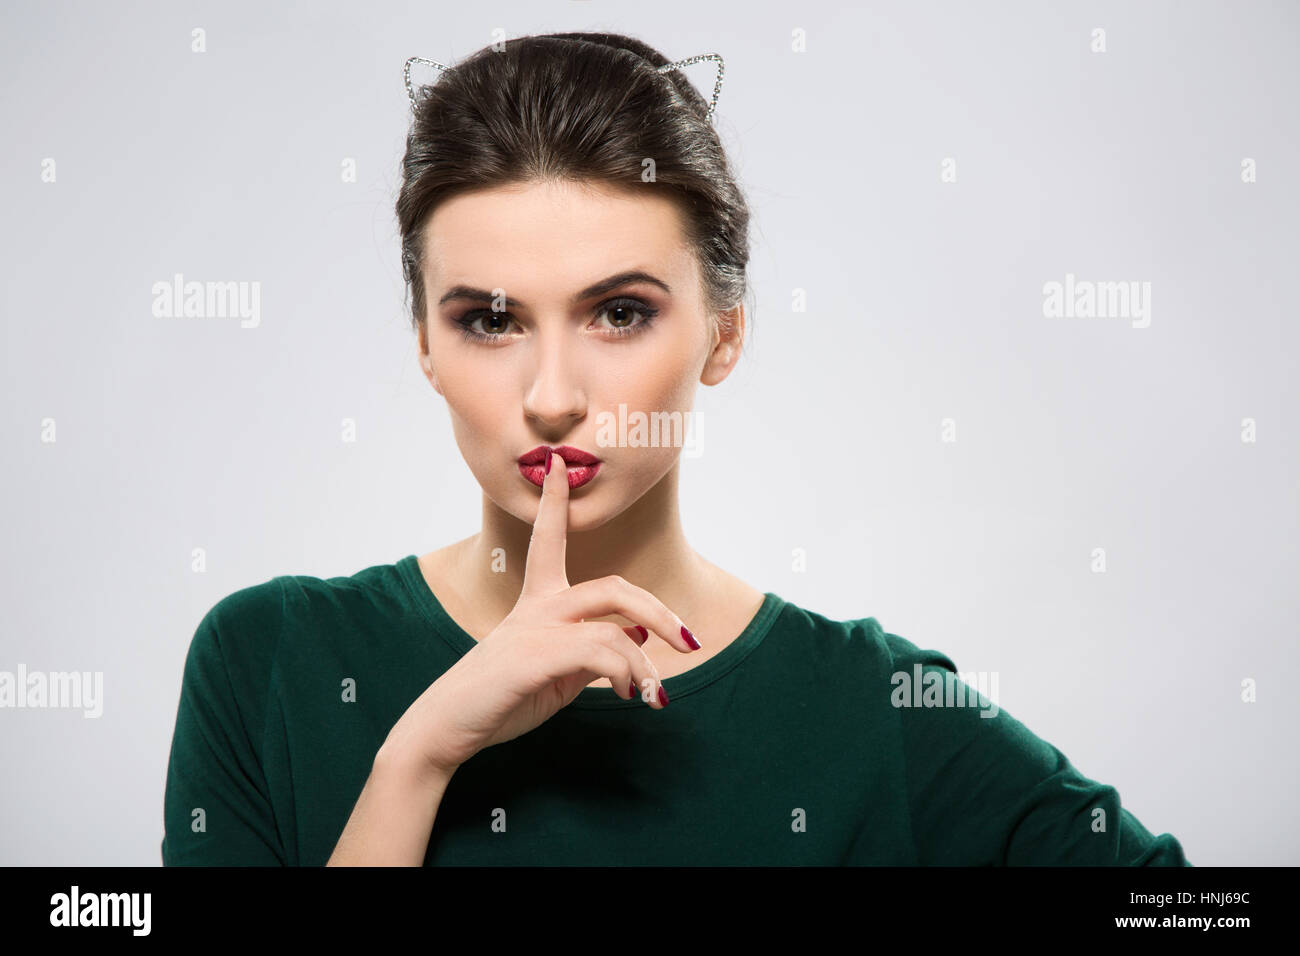 A portrait of lovely woman with dark hair - Stock Image